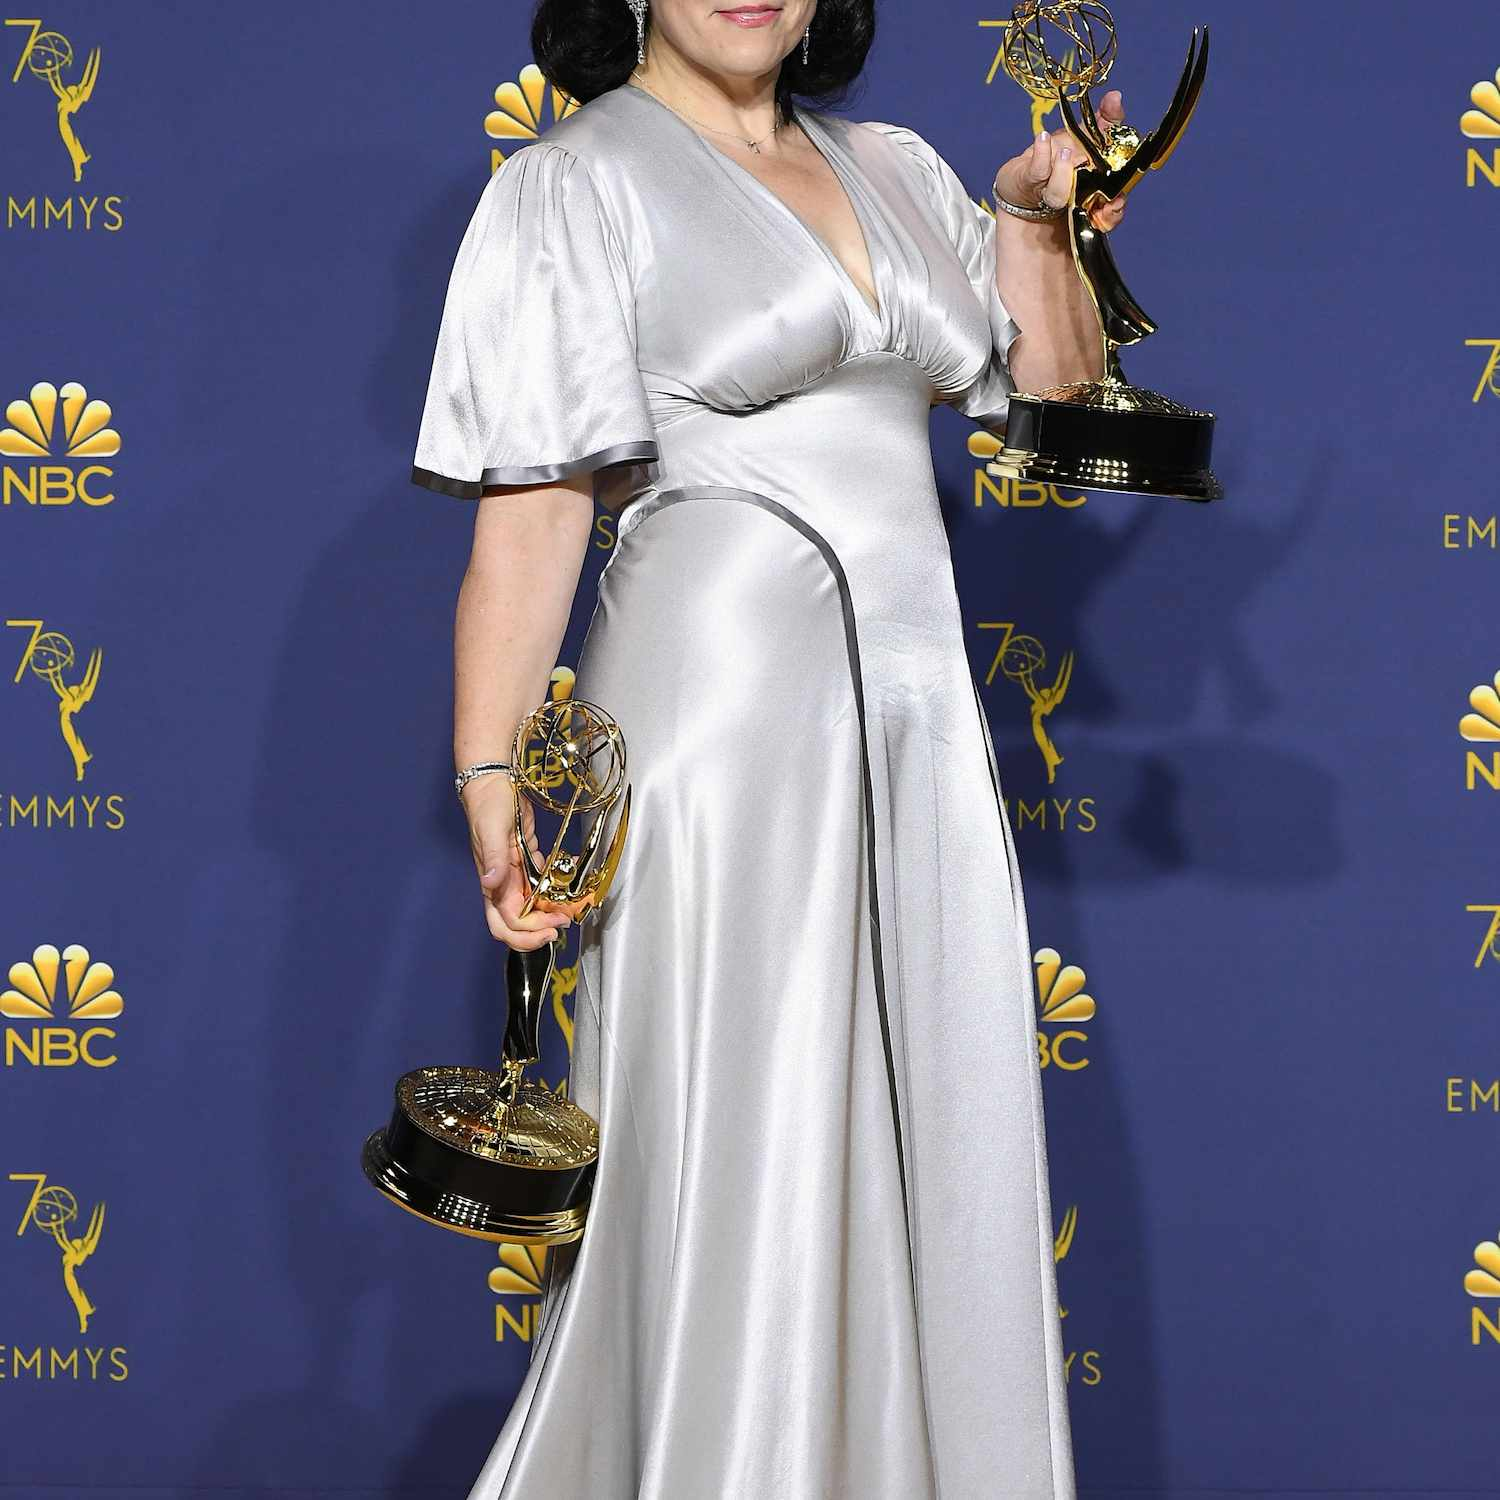 Alex Borstein holds up two Emmys at the 70th Annual Emmy Awards